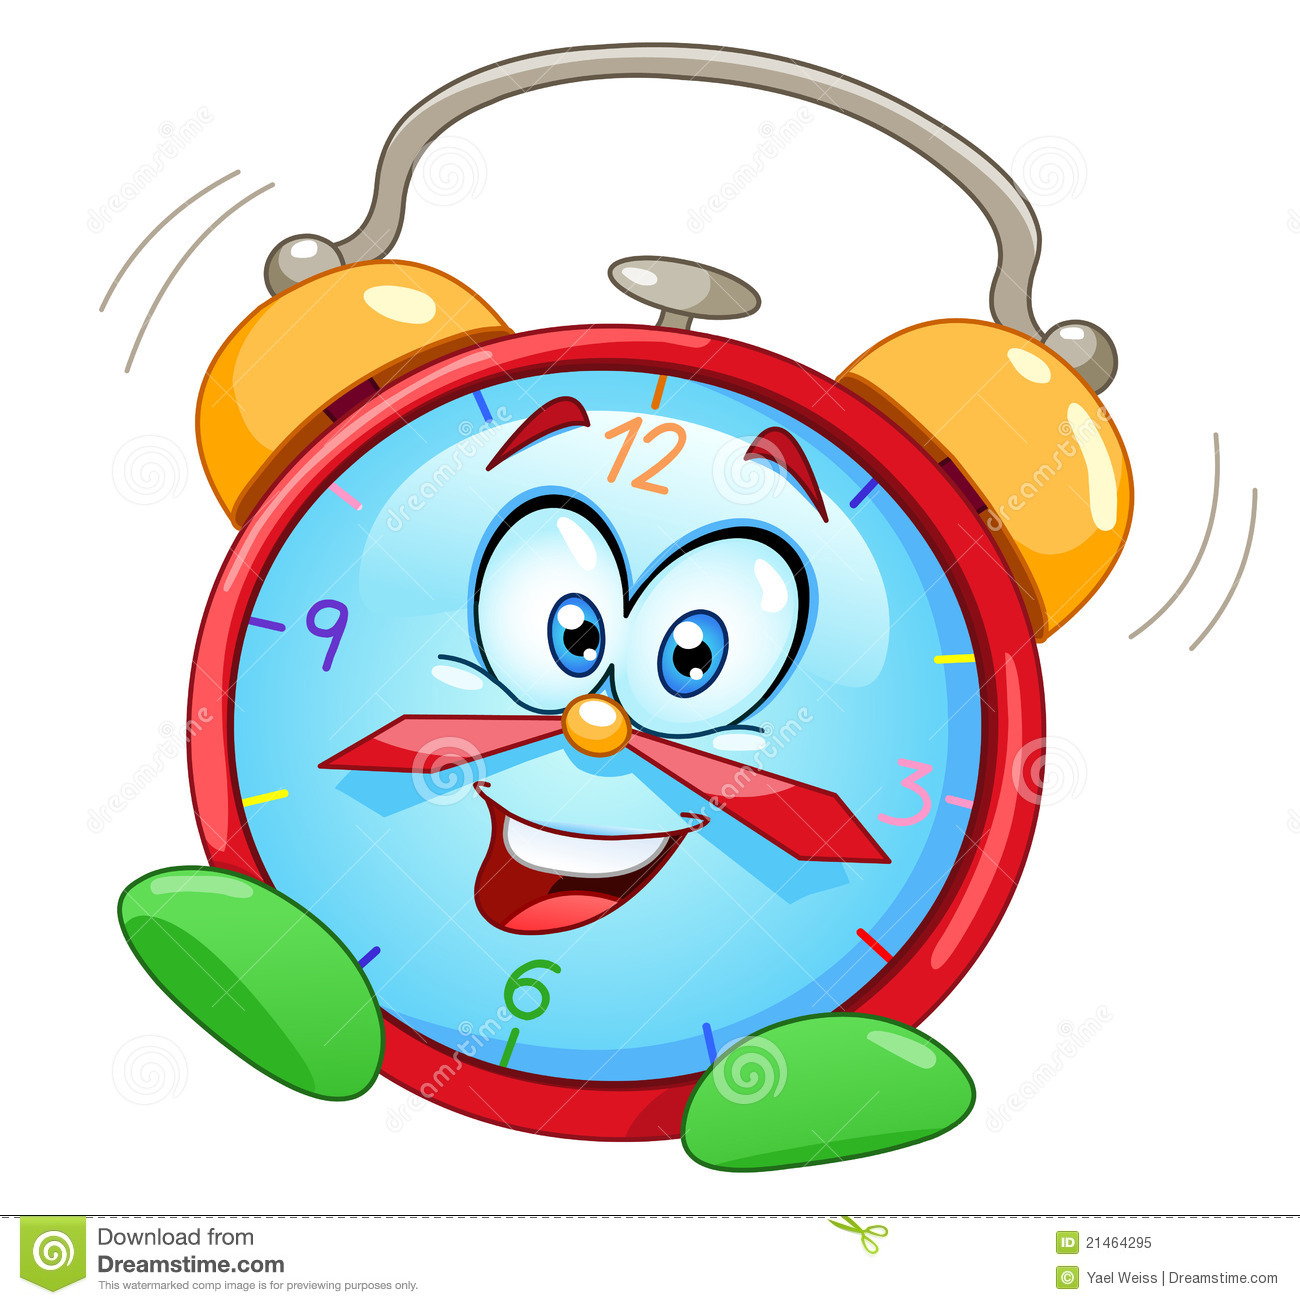 Snowed Under With Work additionally Wall clock 1 green furthermore Green stop light clipart furthermore Why Noise Affects Memory further Doku. on clock clip art